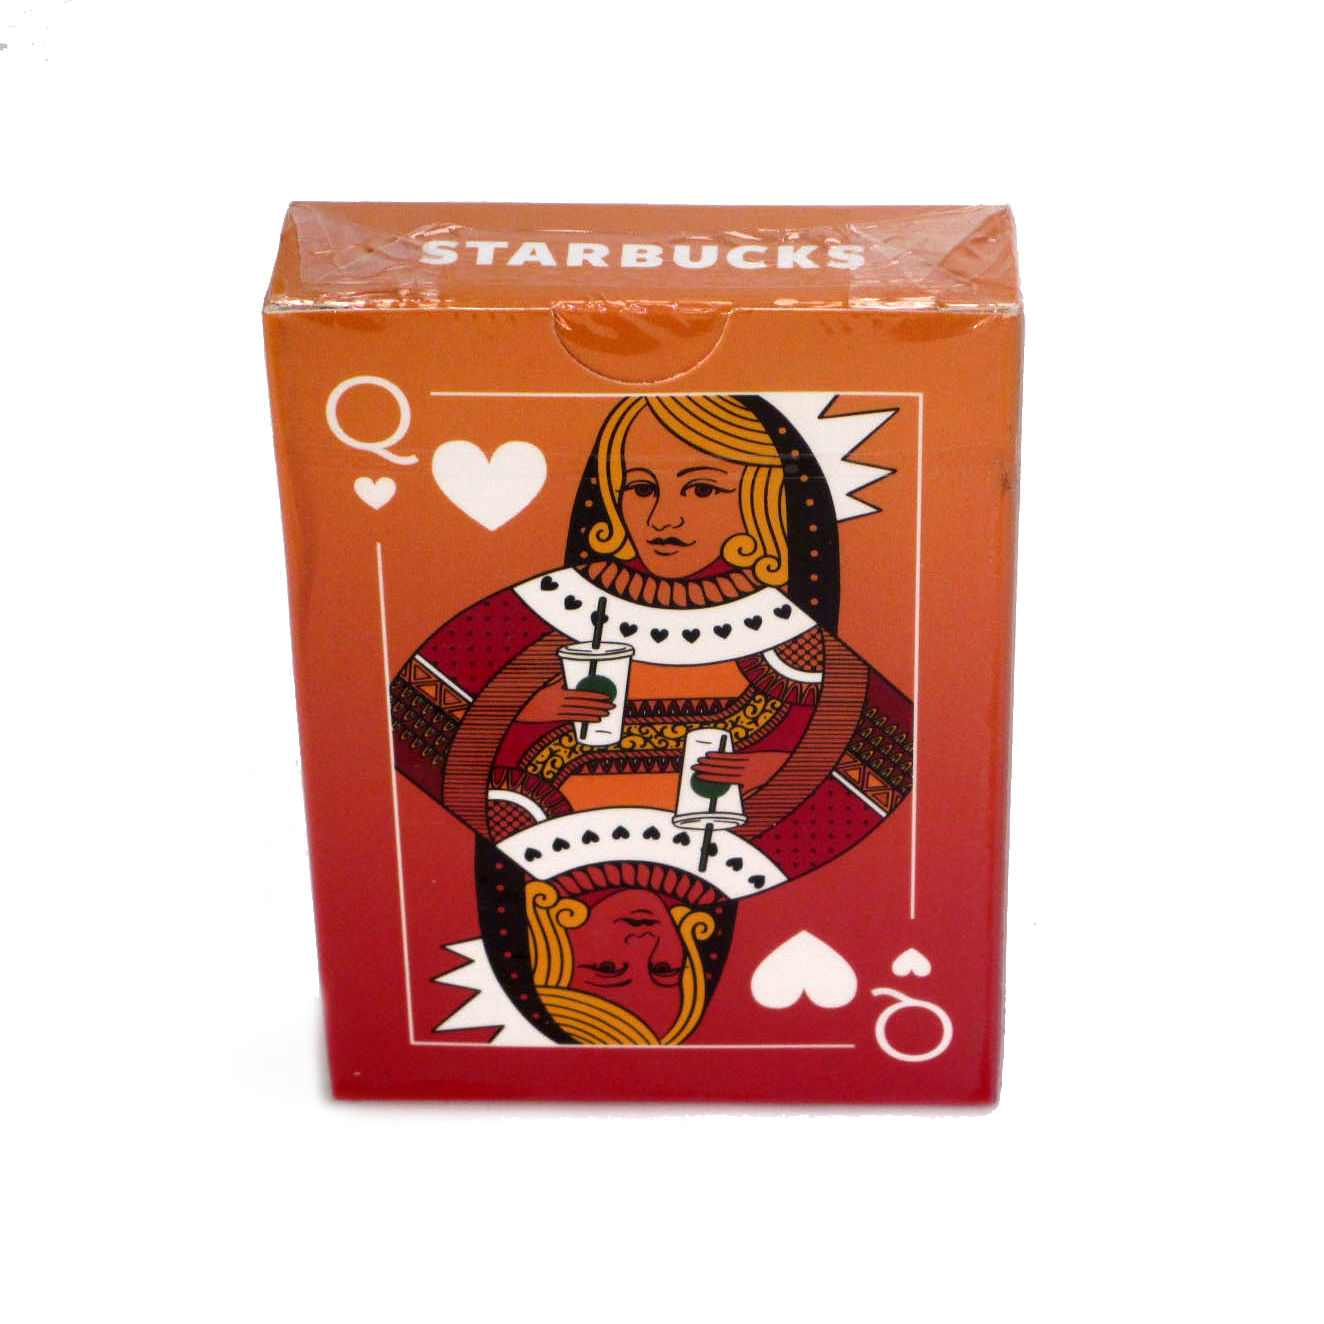 Playing card deck for Starbucks